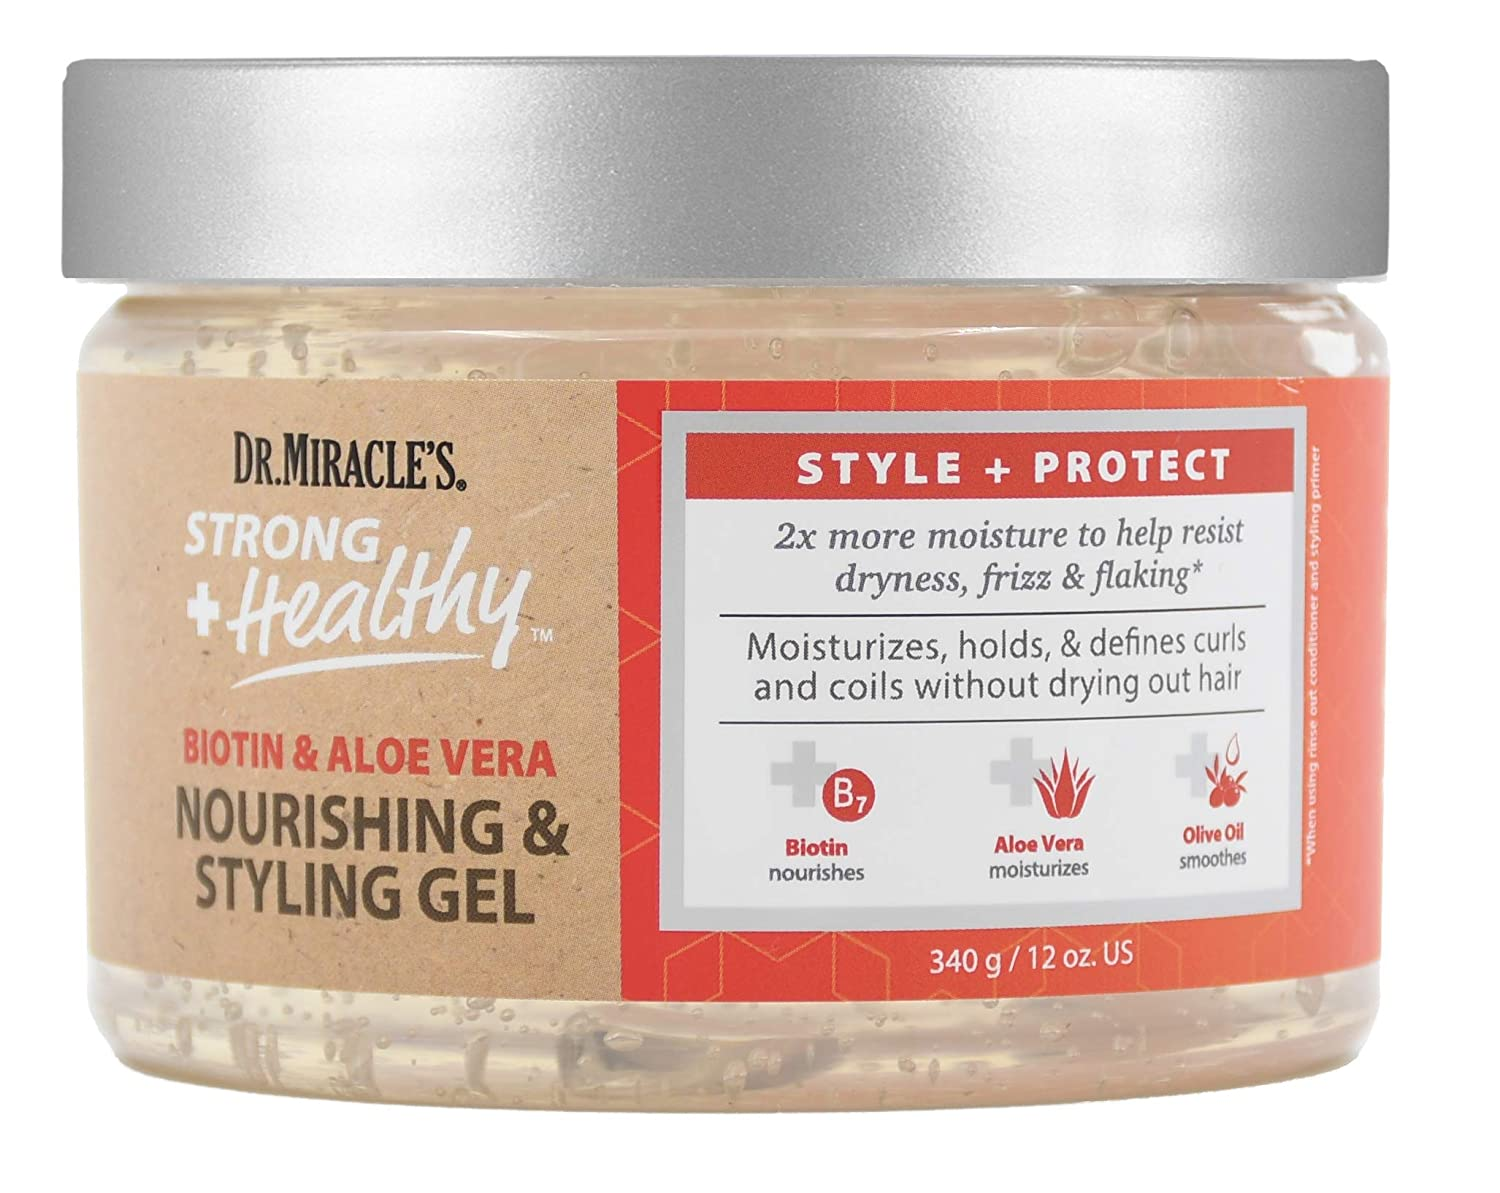 Dr. Miracle's Strong & Healthy Nourishing & Styling Gel. Contains Aloe Vera and Olive Oil to moisturize hair and reduce irritation.